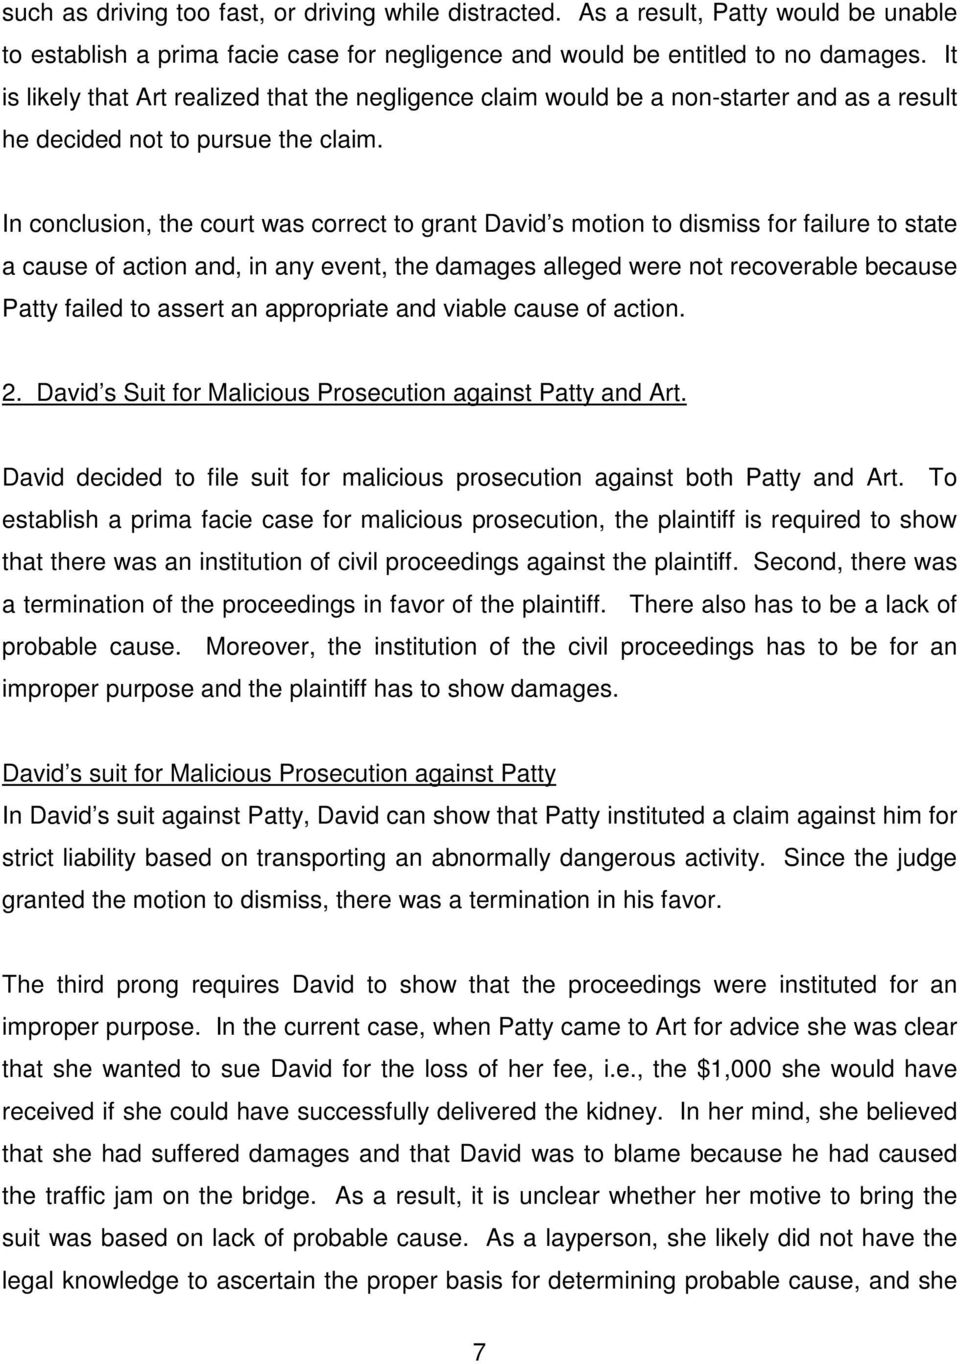 In conclusion, the court was correct to grant David s motion to dismiss for failure to state a cause of action and, in any event, the damages alleged were not recoverable because Patty failed to